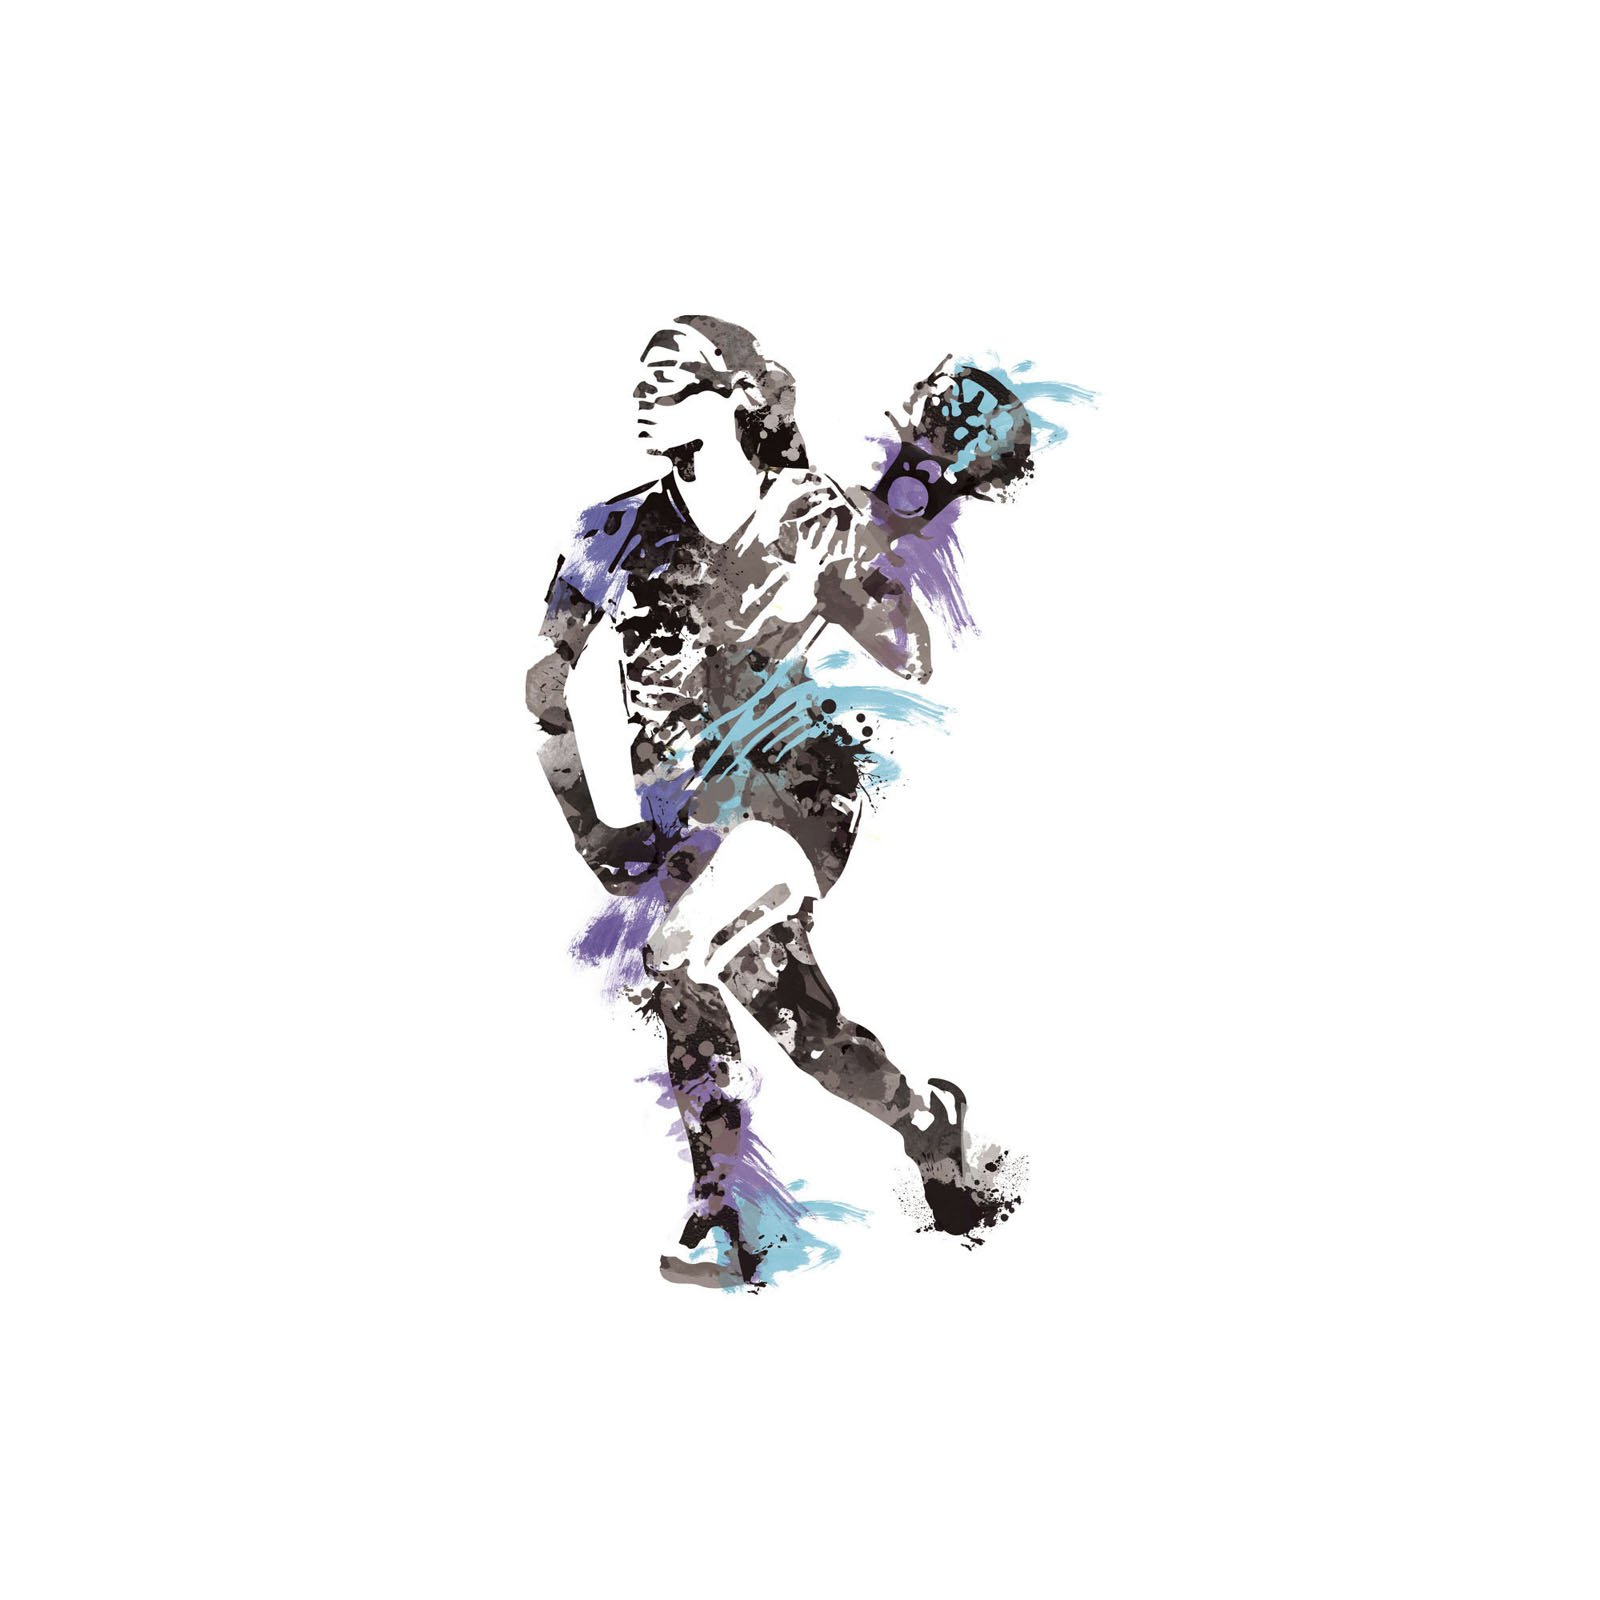 RoomMates Women's Lacrosse Champion Peel and Stick Giant Wall Decals by RoomMates